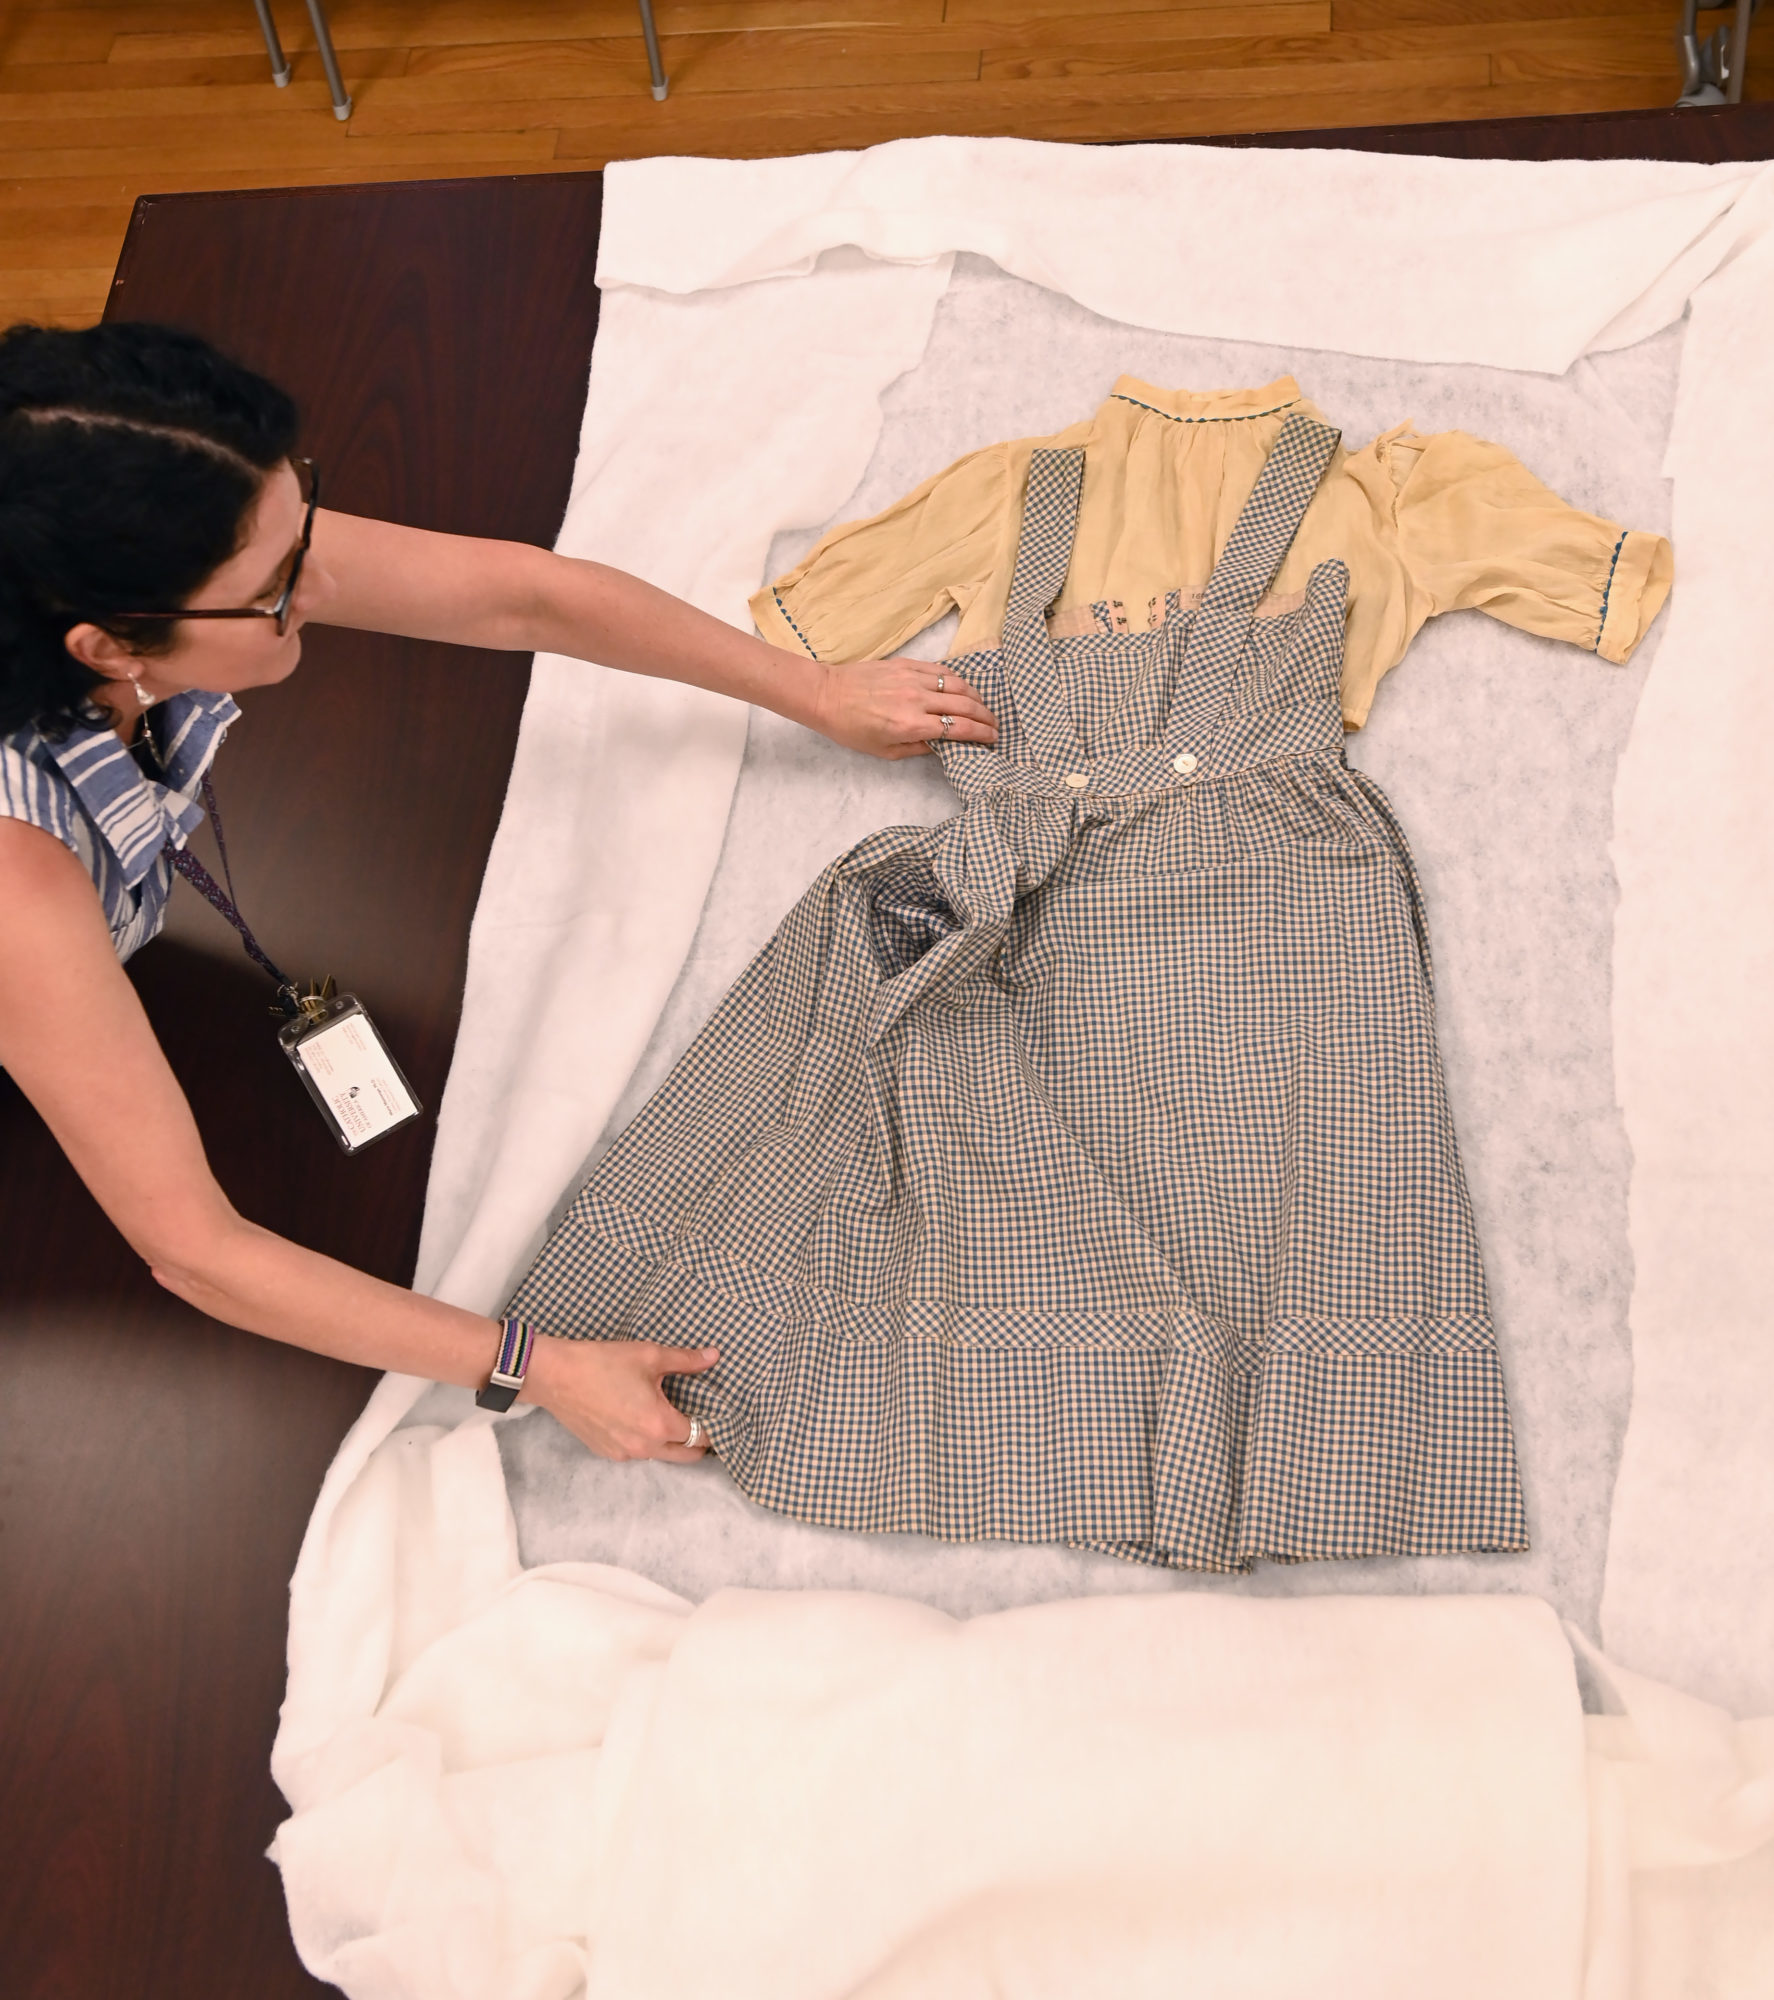 """Dr. Maria Mazzenga, curator, Special Collections at The Catholic University of America, displays the dress worn by actress Judy Garland's character Dorothy in the classic 1939 film """"The Wizard Of Oz."""""""